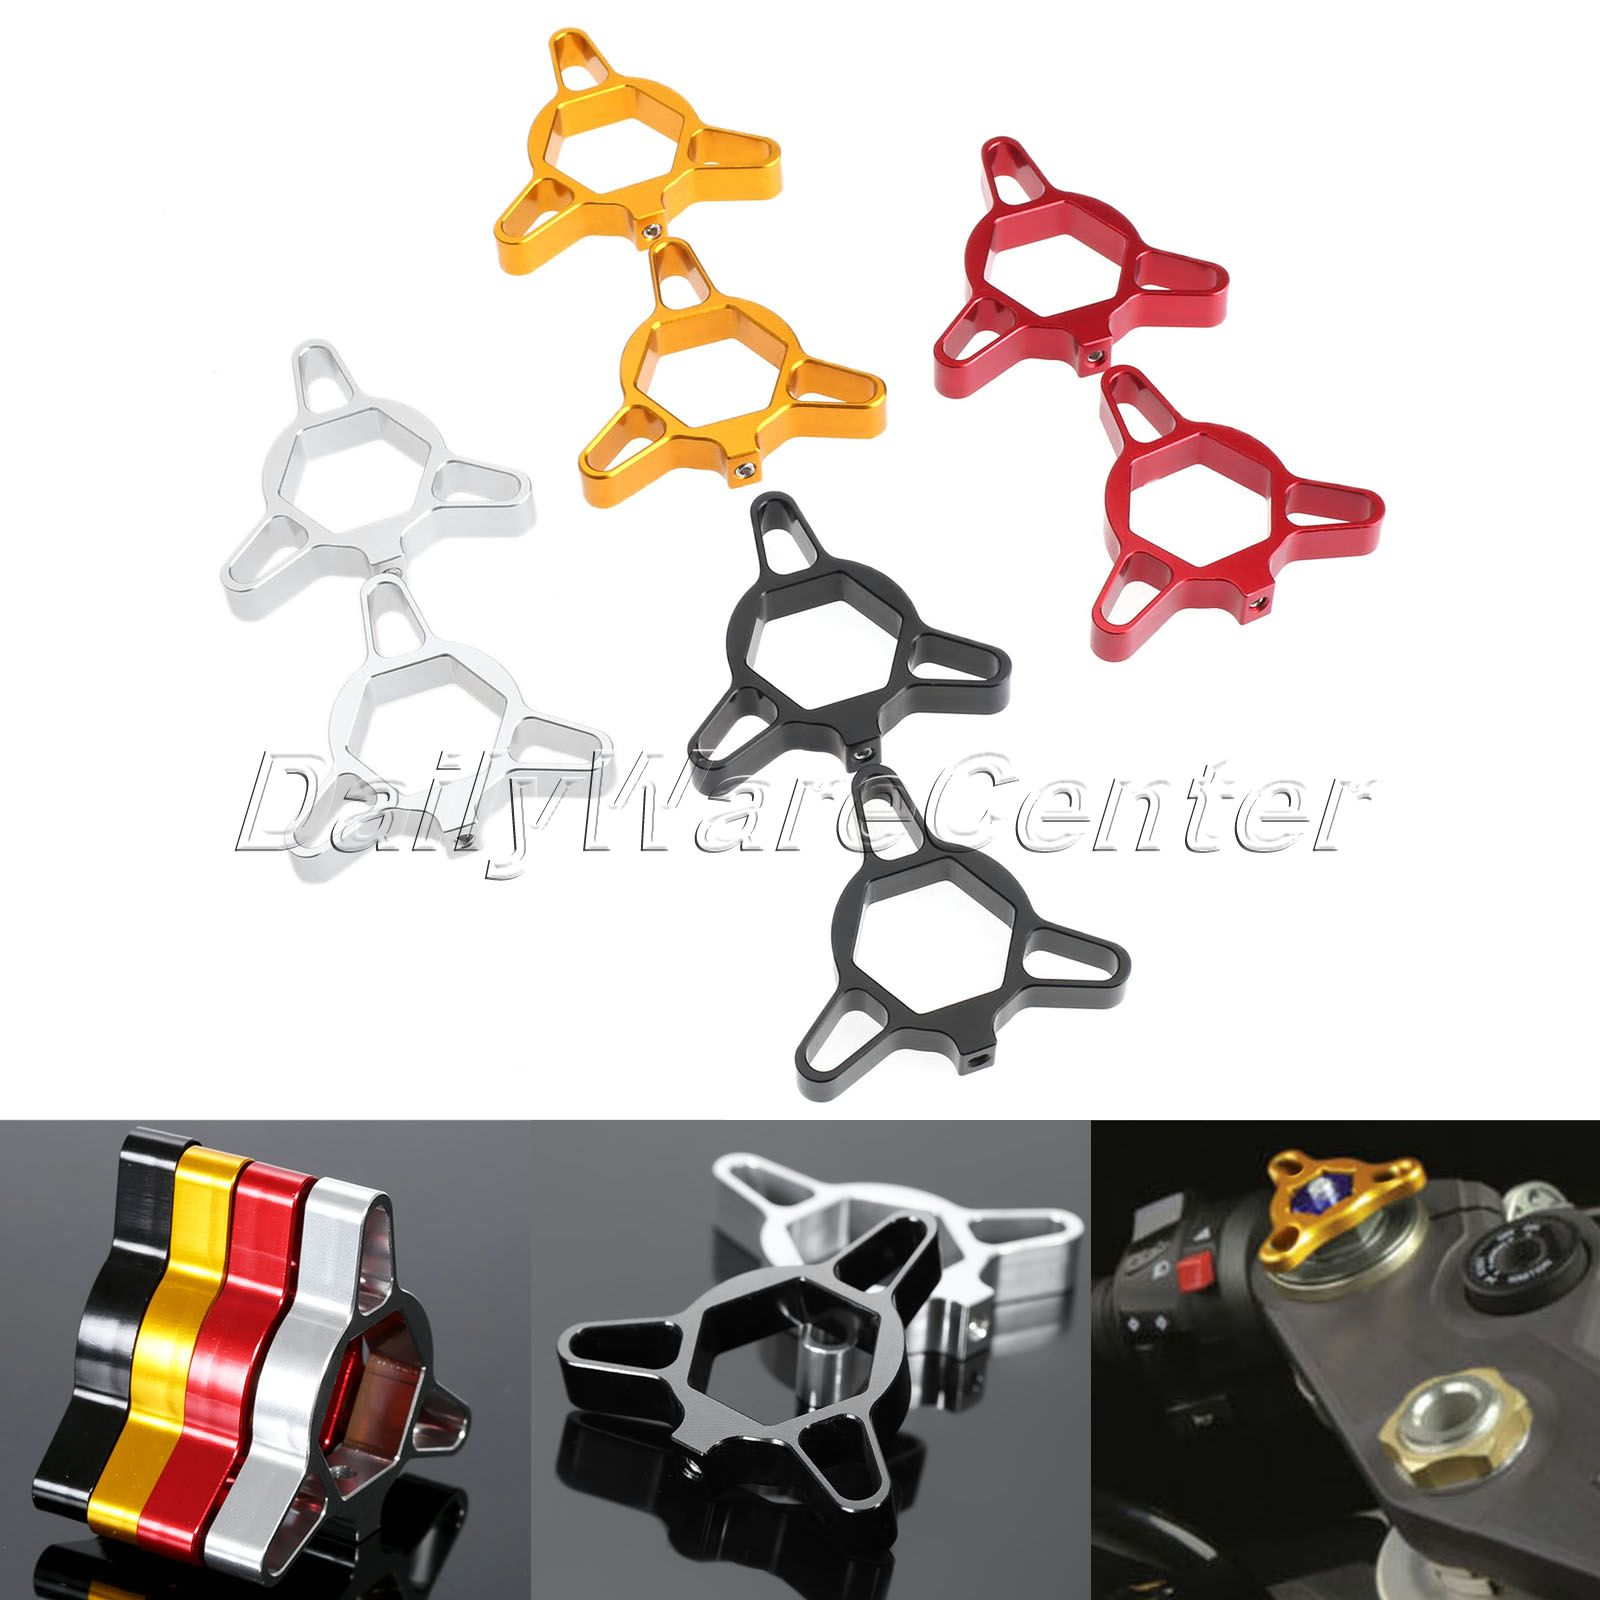 2XUniversal 19mm CNC Aluminum Fork Preload Adjusters for Honda CBR 600RR 1000RR CB1000R Buell 1125R XB12R Blue/Red/Silver/Black